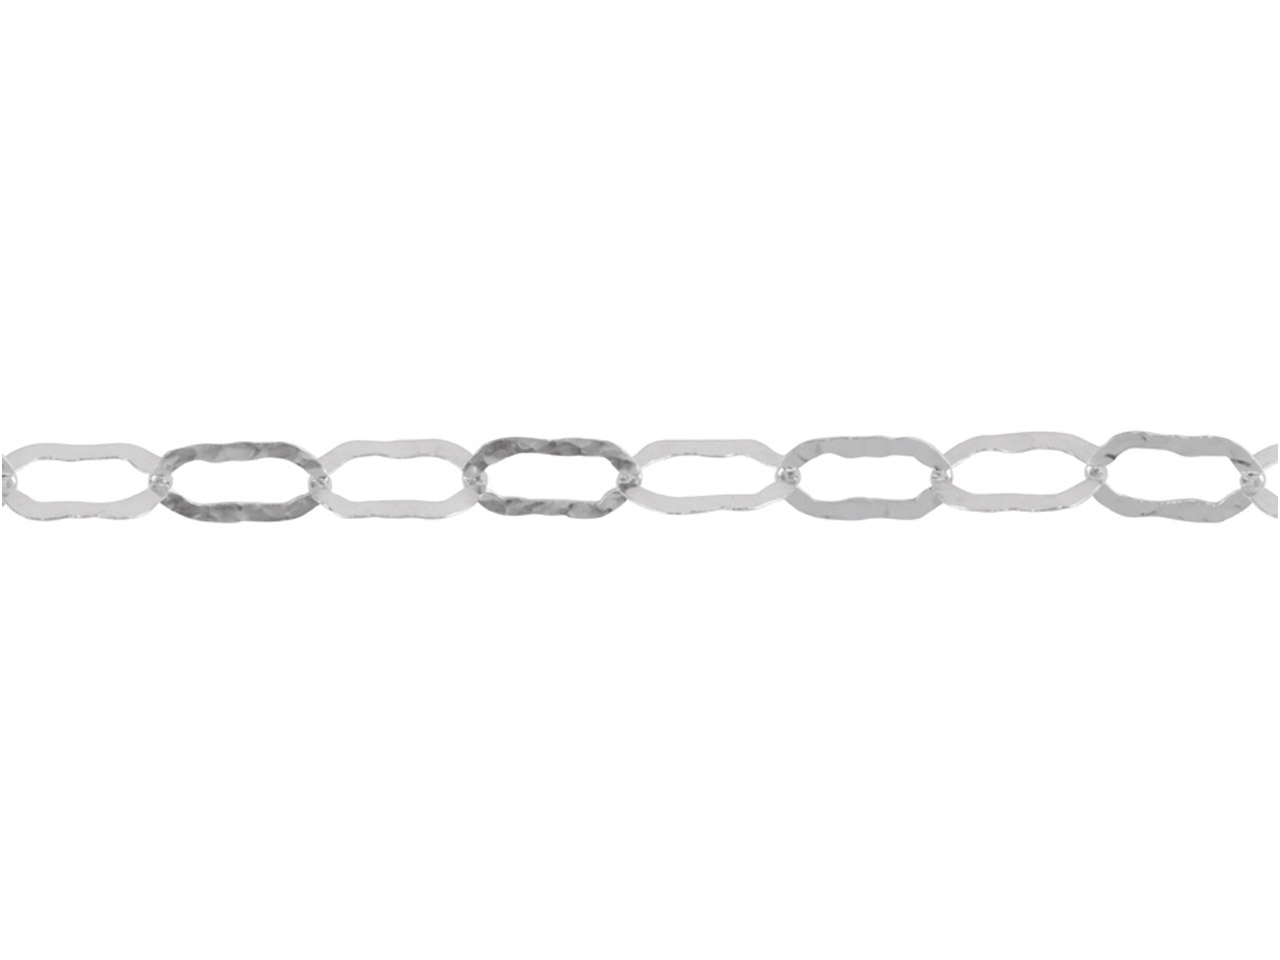 Sterling Silver Chain, Planished   Flat Oval Links Are 11x6mm, Loose